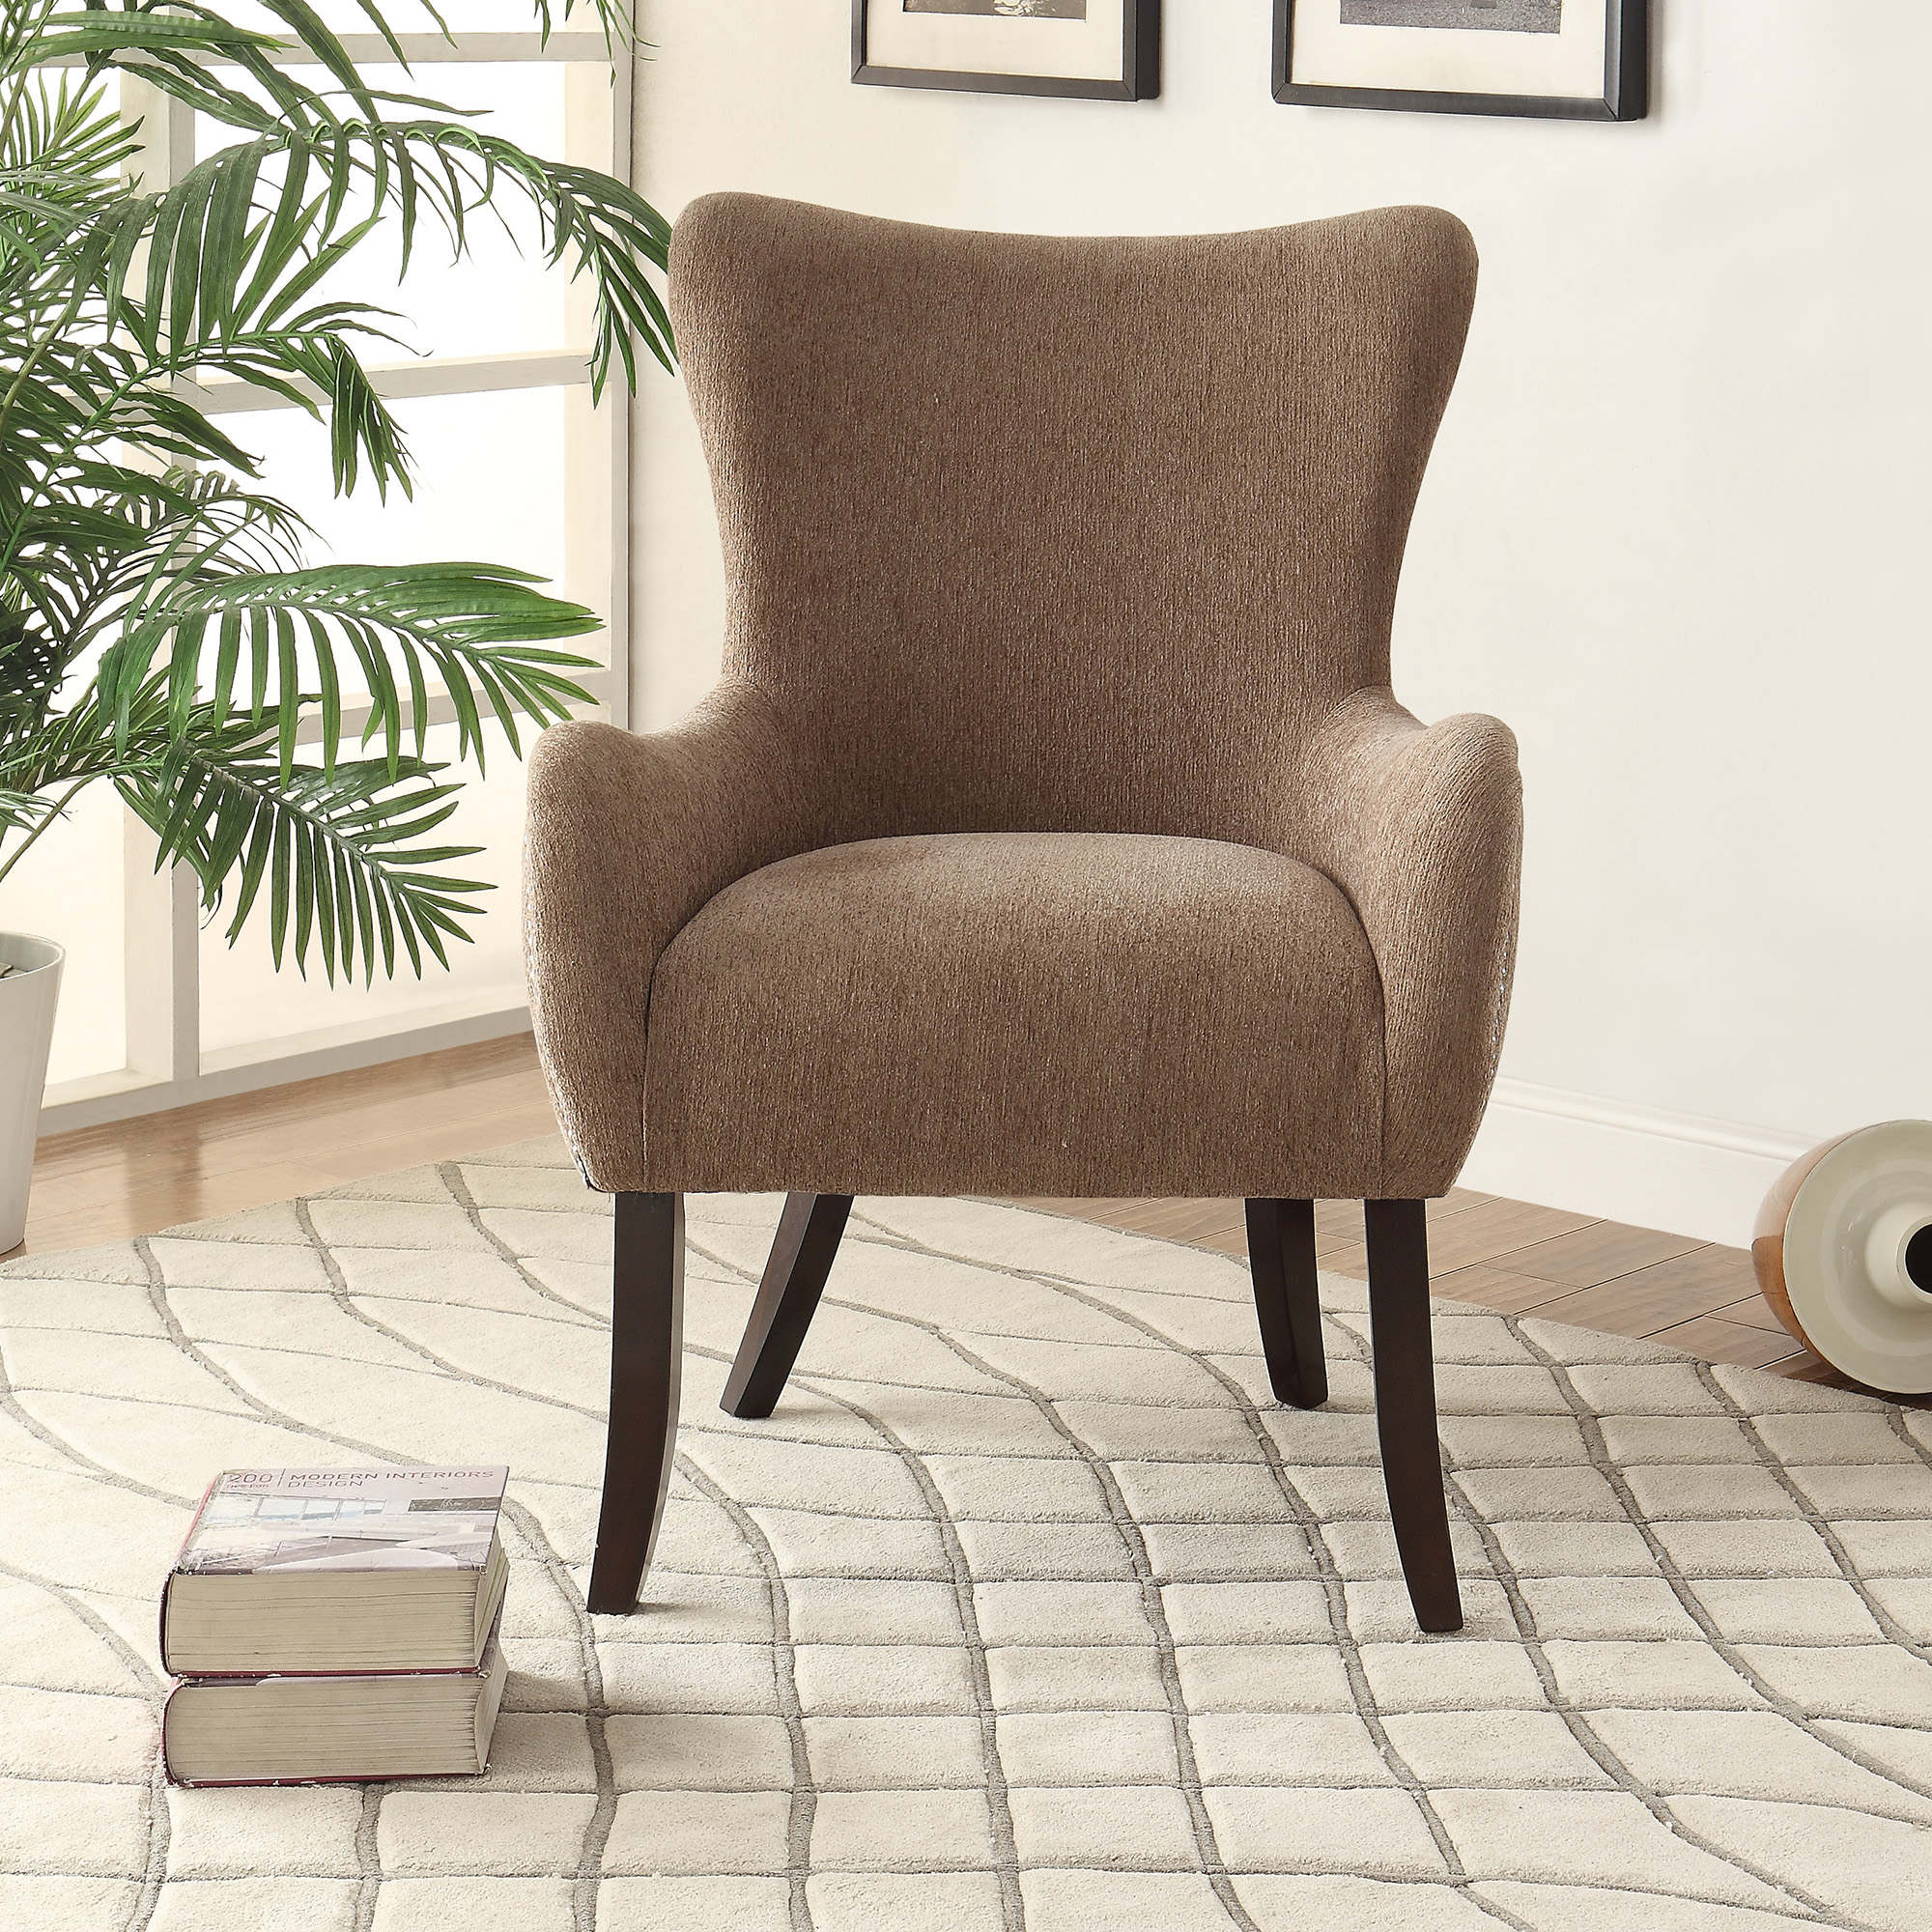 Best Beige Accent Chair Style